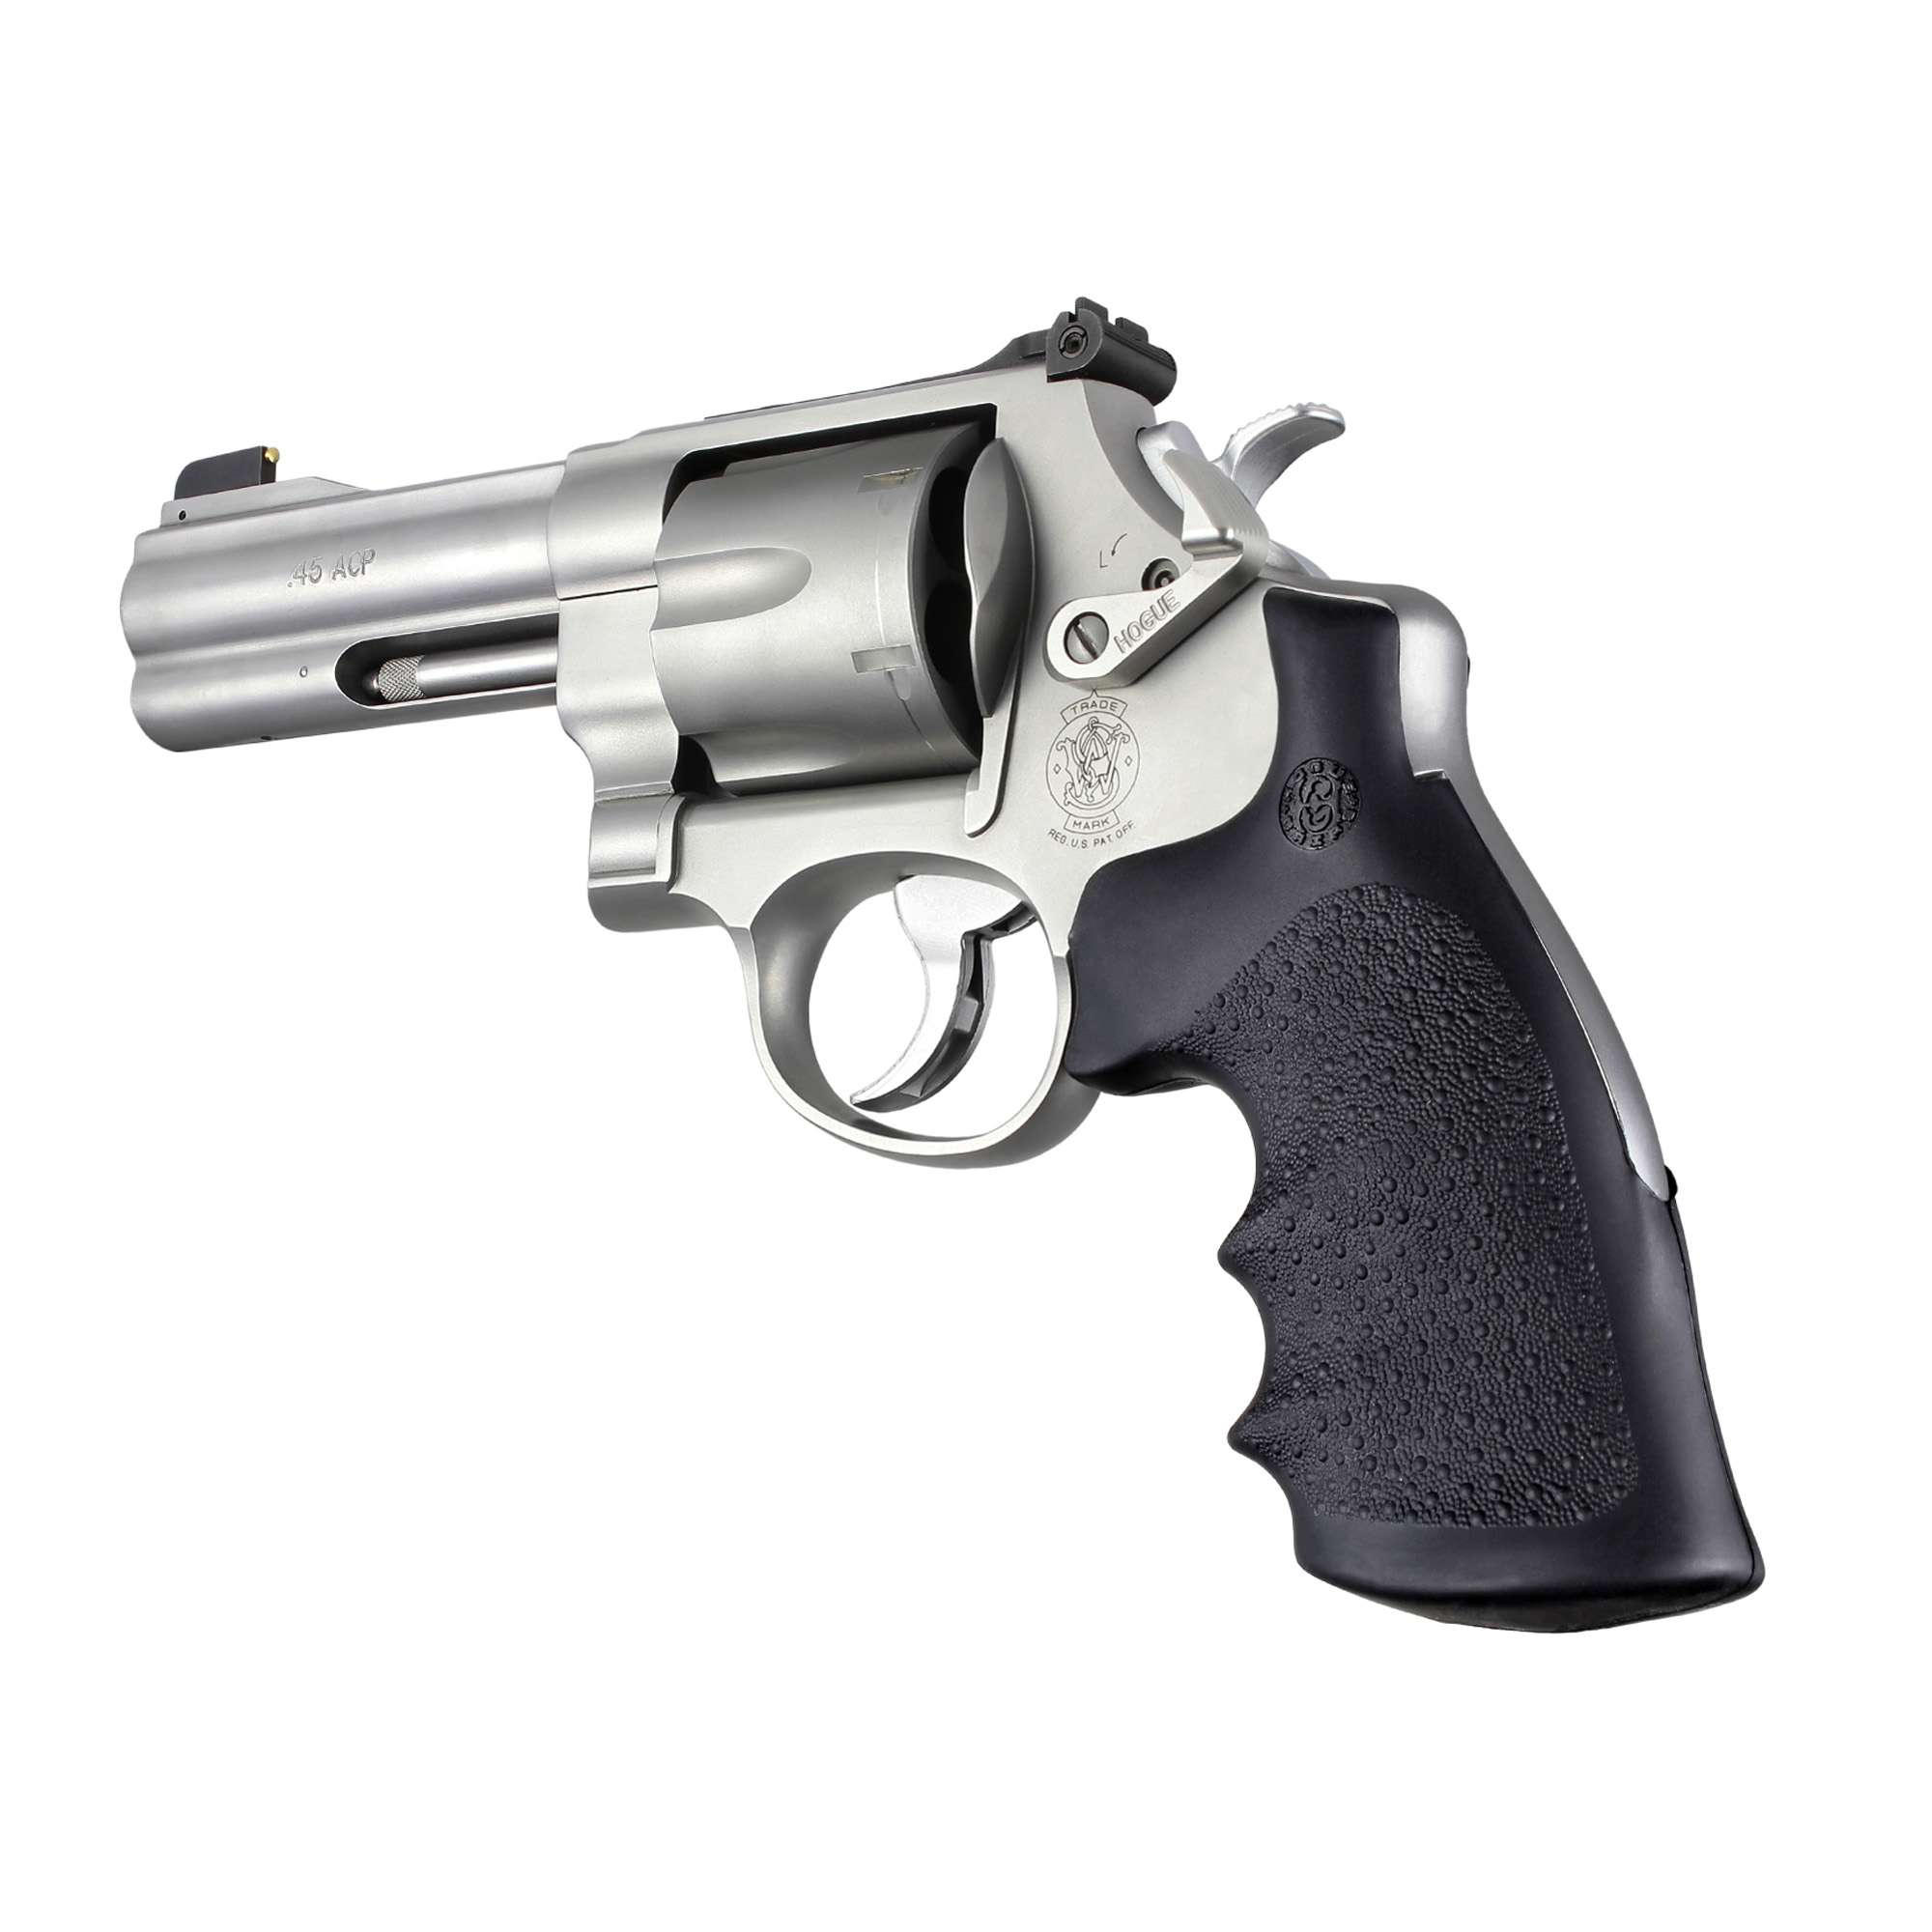 Hogue Monogrip S&w N Convrsn Blk